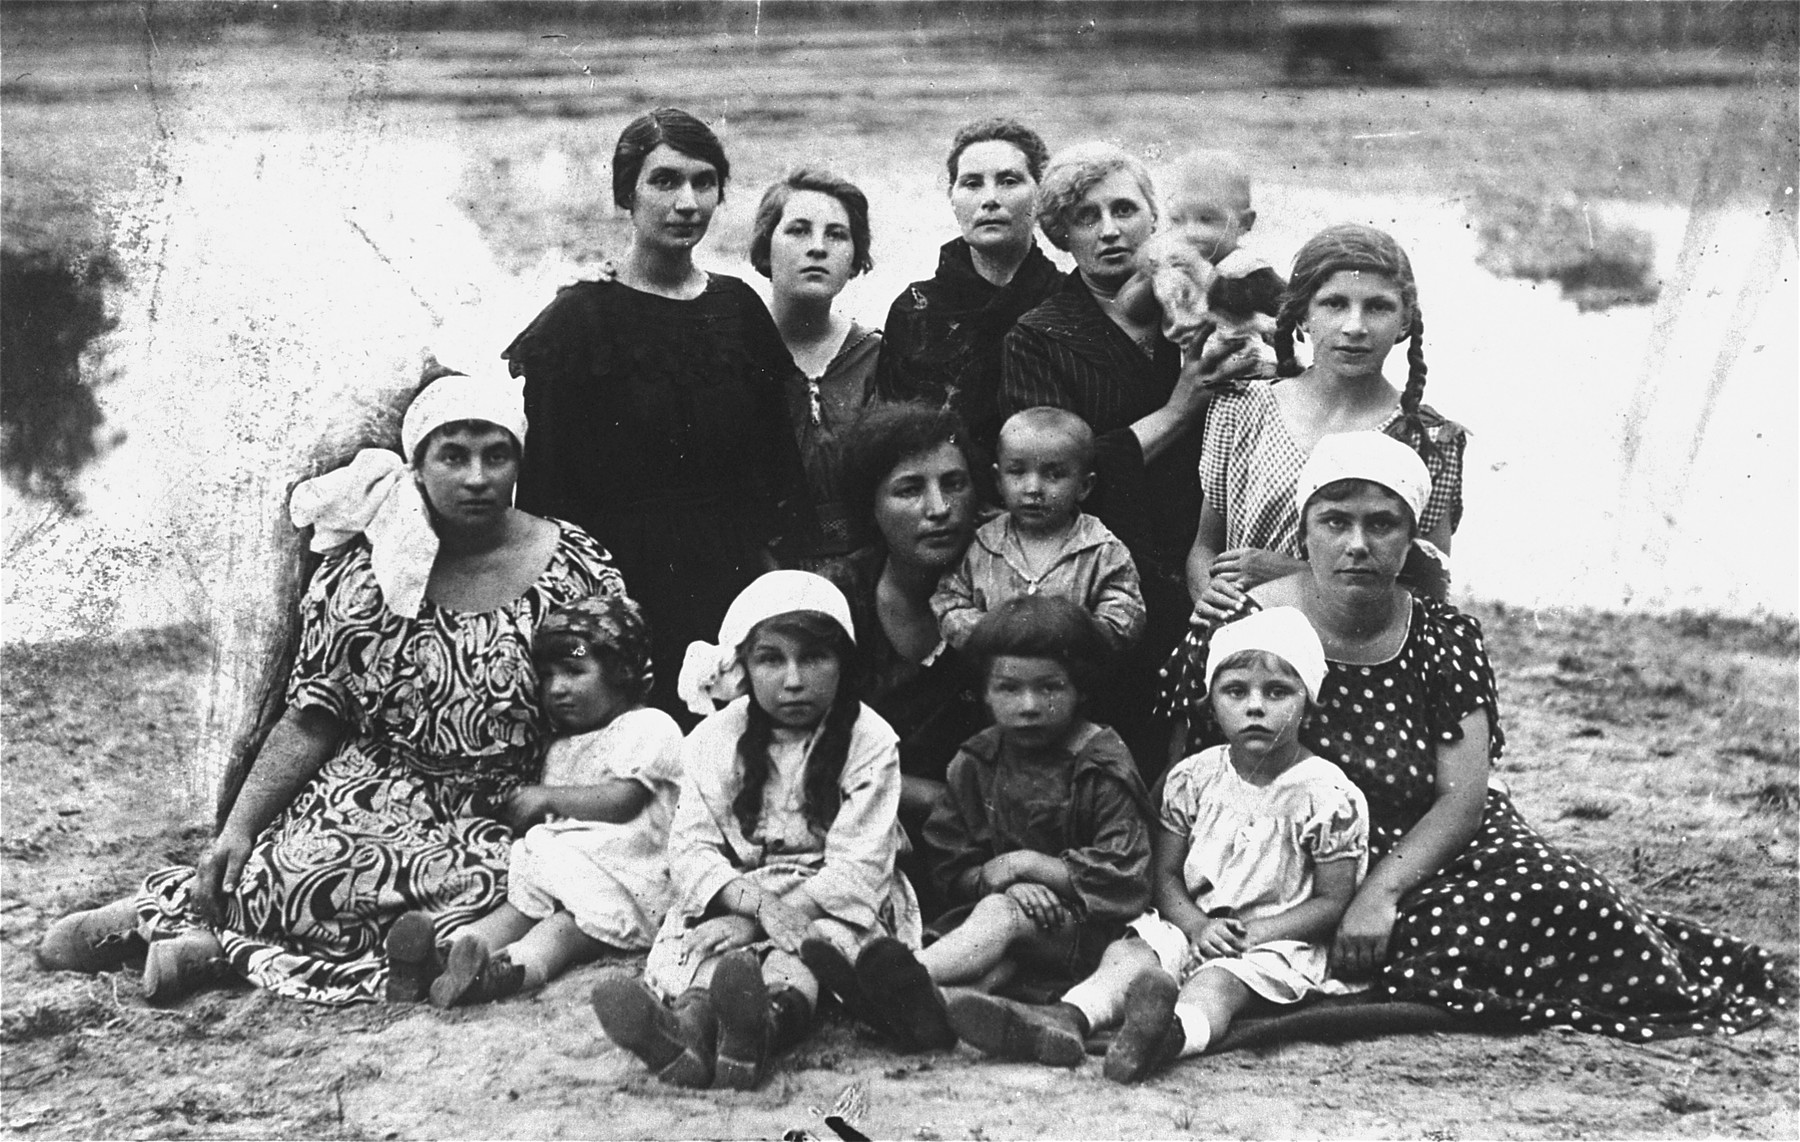 Group portrait of the Magid and Eppel families in the Vilna countryside.